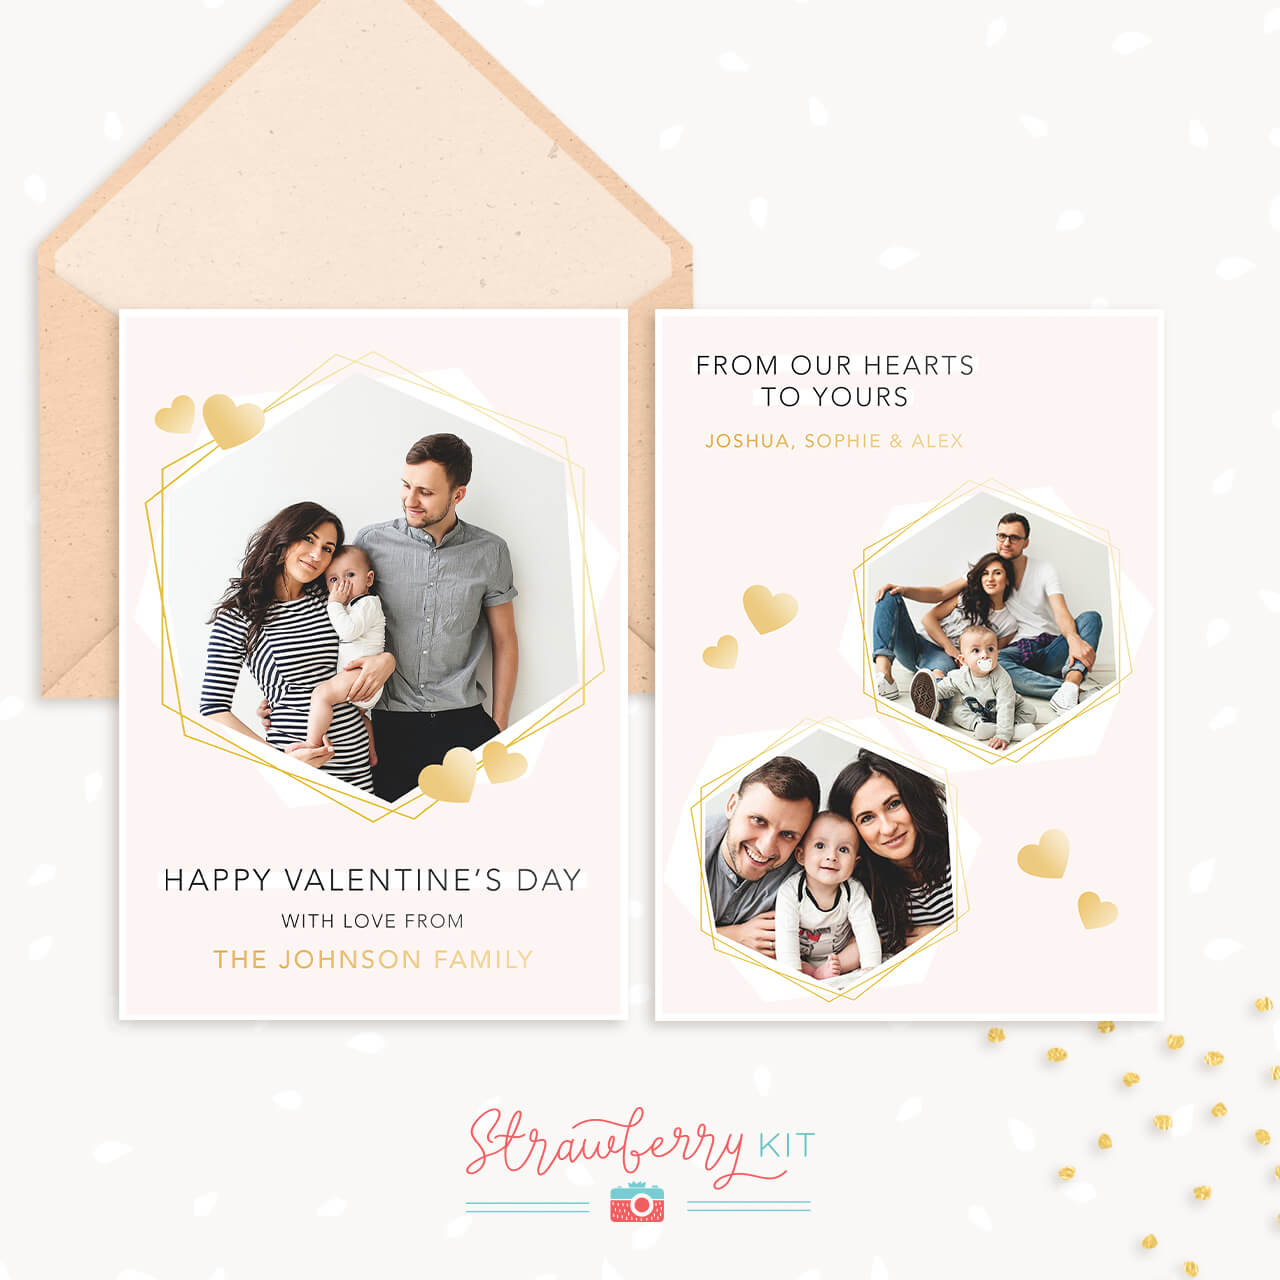 Personalized Valentine S Day Card Template With Photo Strawberry Kit